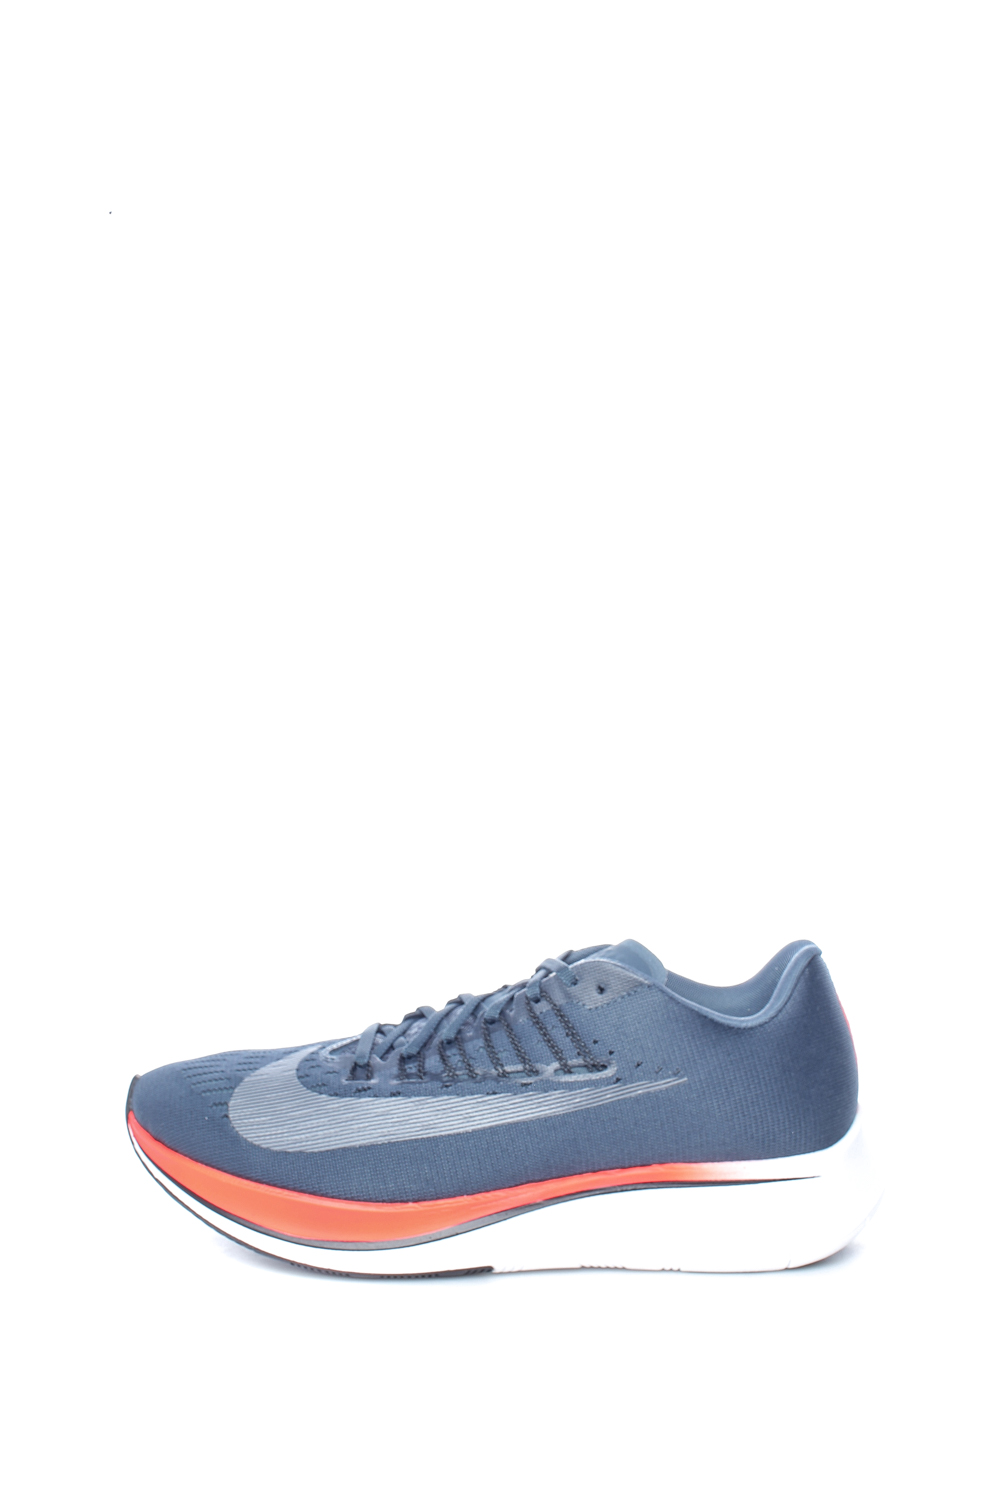 56de1ccf19f -33% Factory Outlet NIKE – Ανδρικά Nike Zoom Fly Running Shoe γκρι-μπλε